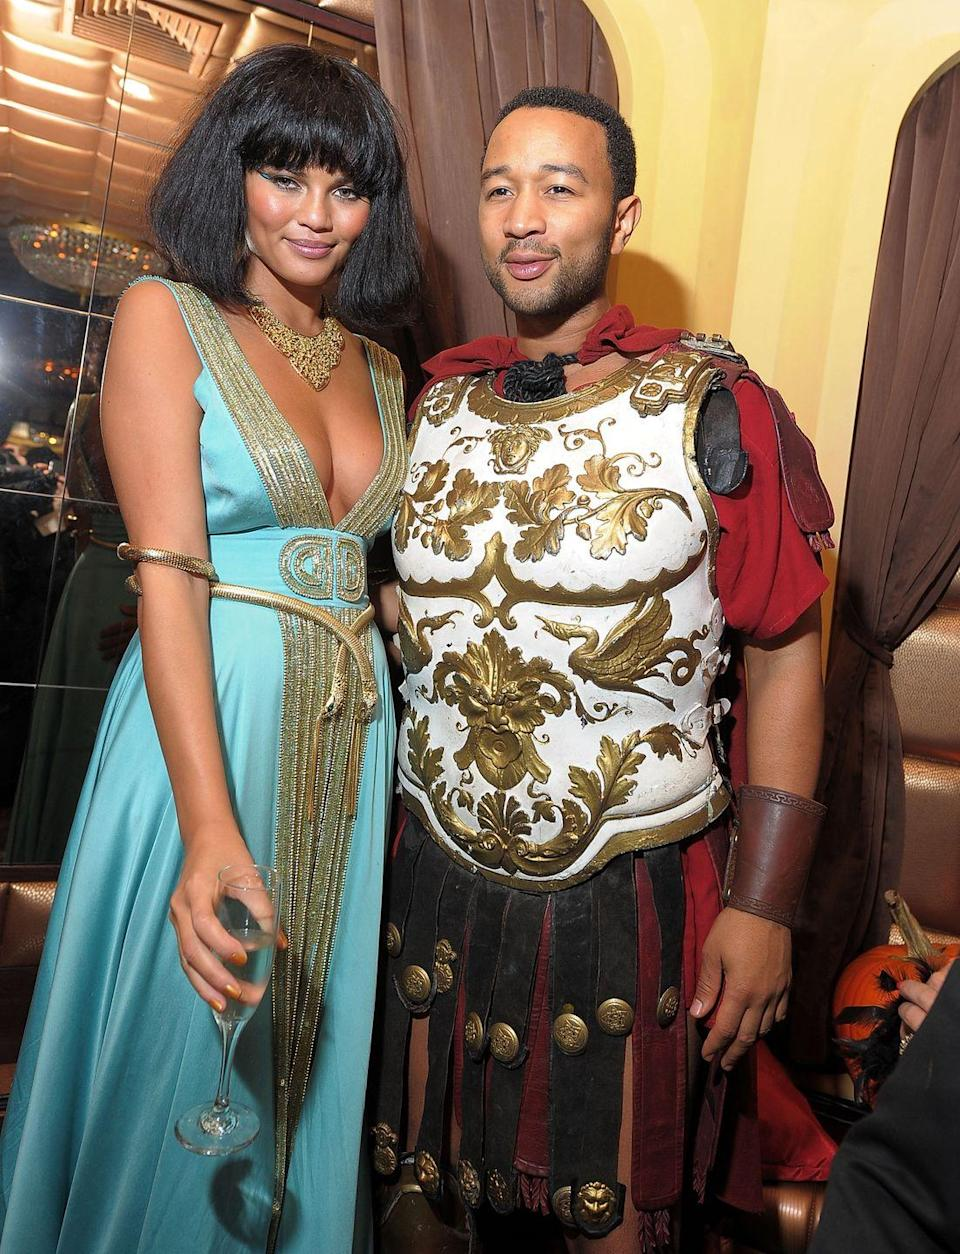 <p>Chrissy Teigen and John Legend honored one of history's most iconic duos, Cleopatra and Mark Antony, in 2010.</p>